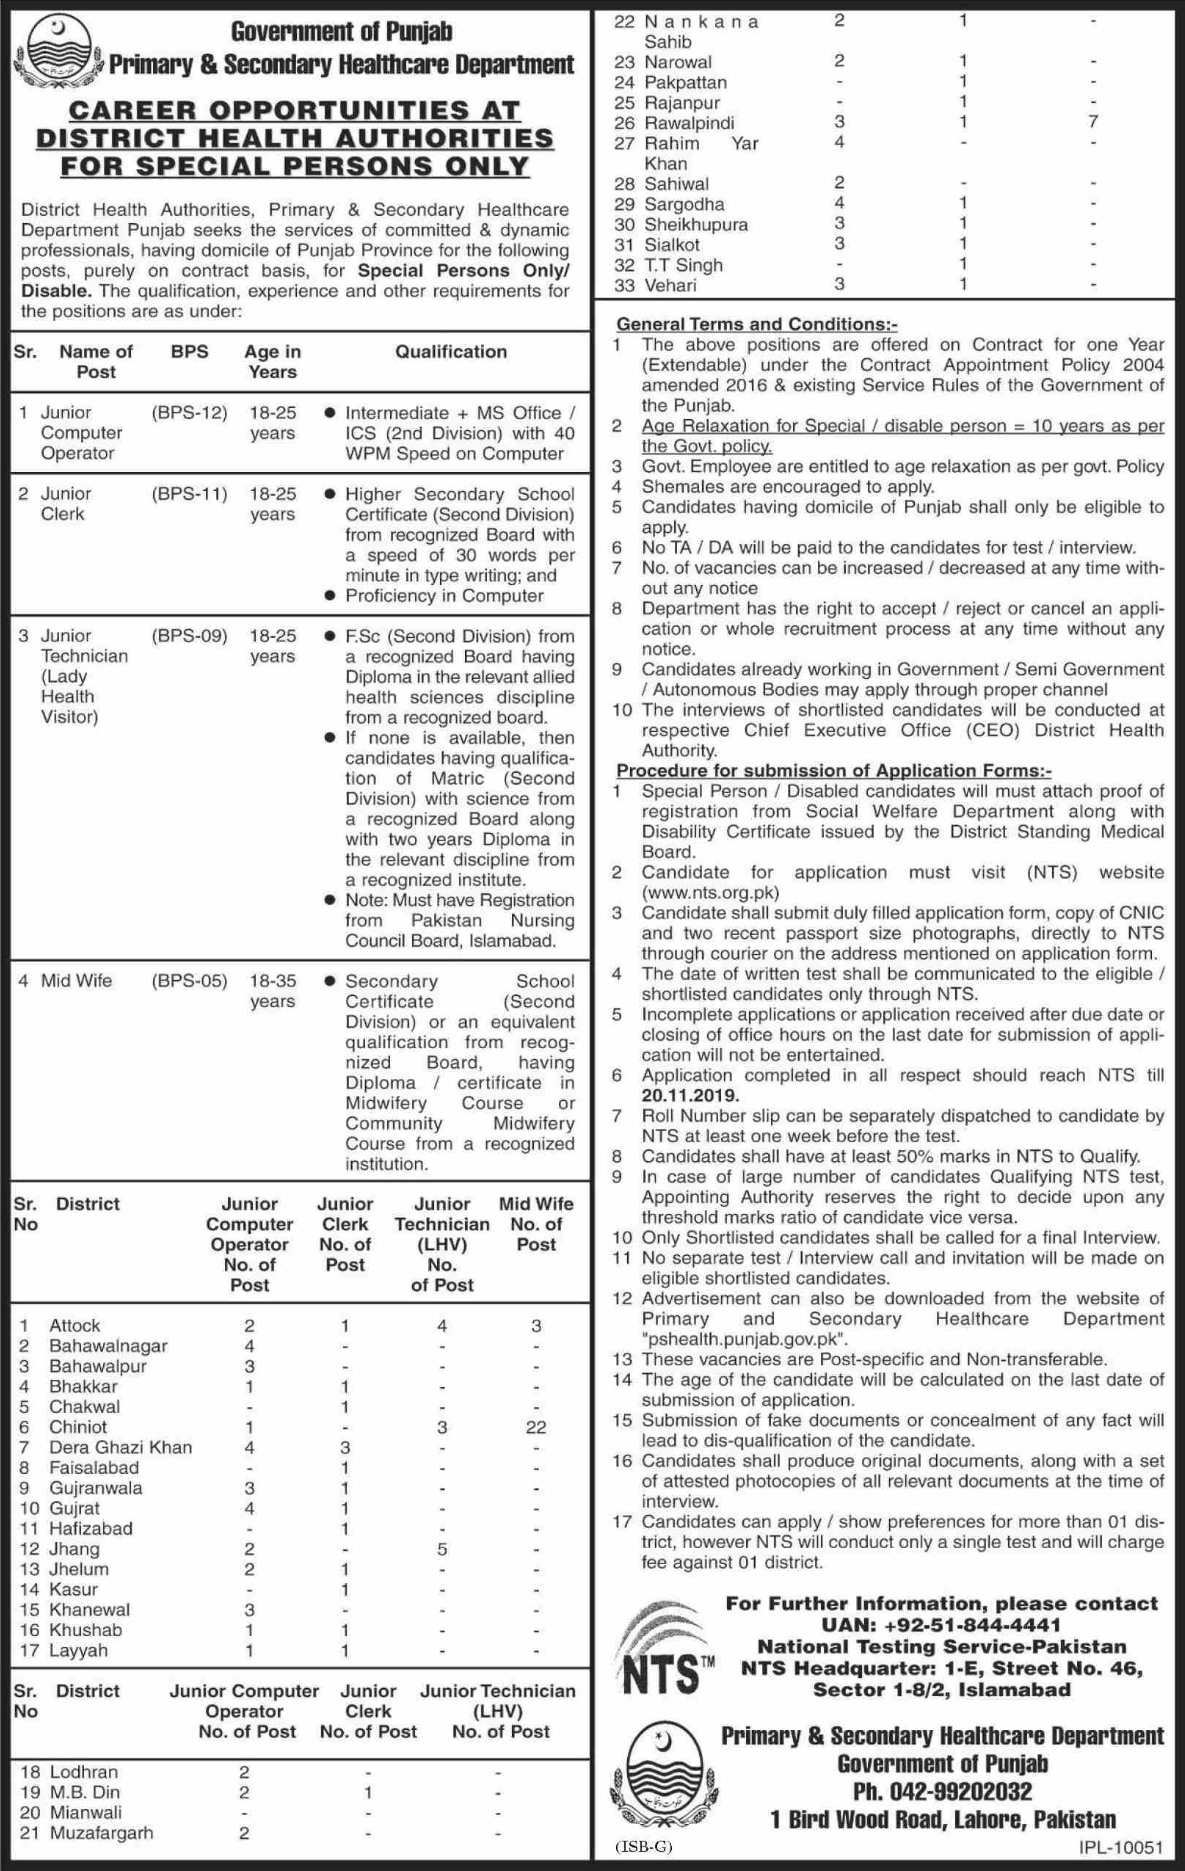 Primary Secondary Health Care Department PSHD Punjab Jobs NTS Test Roll No Slip